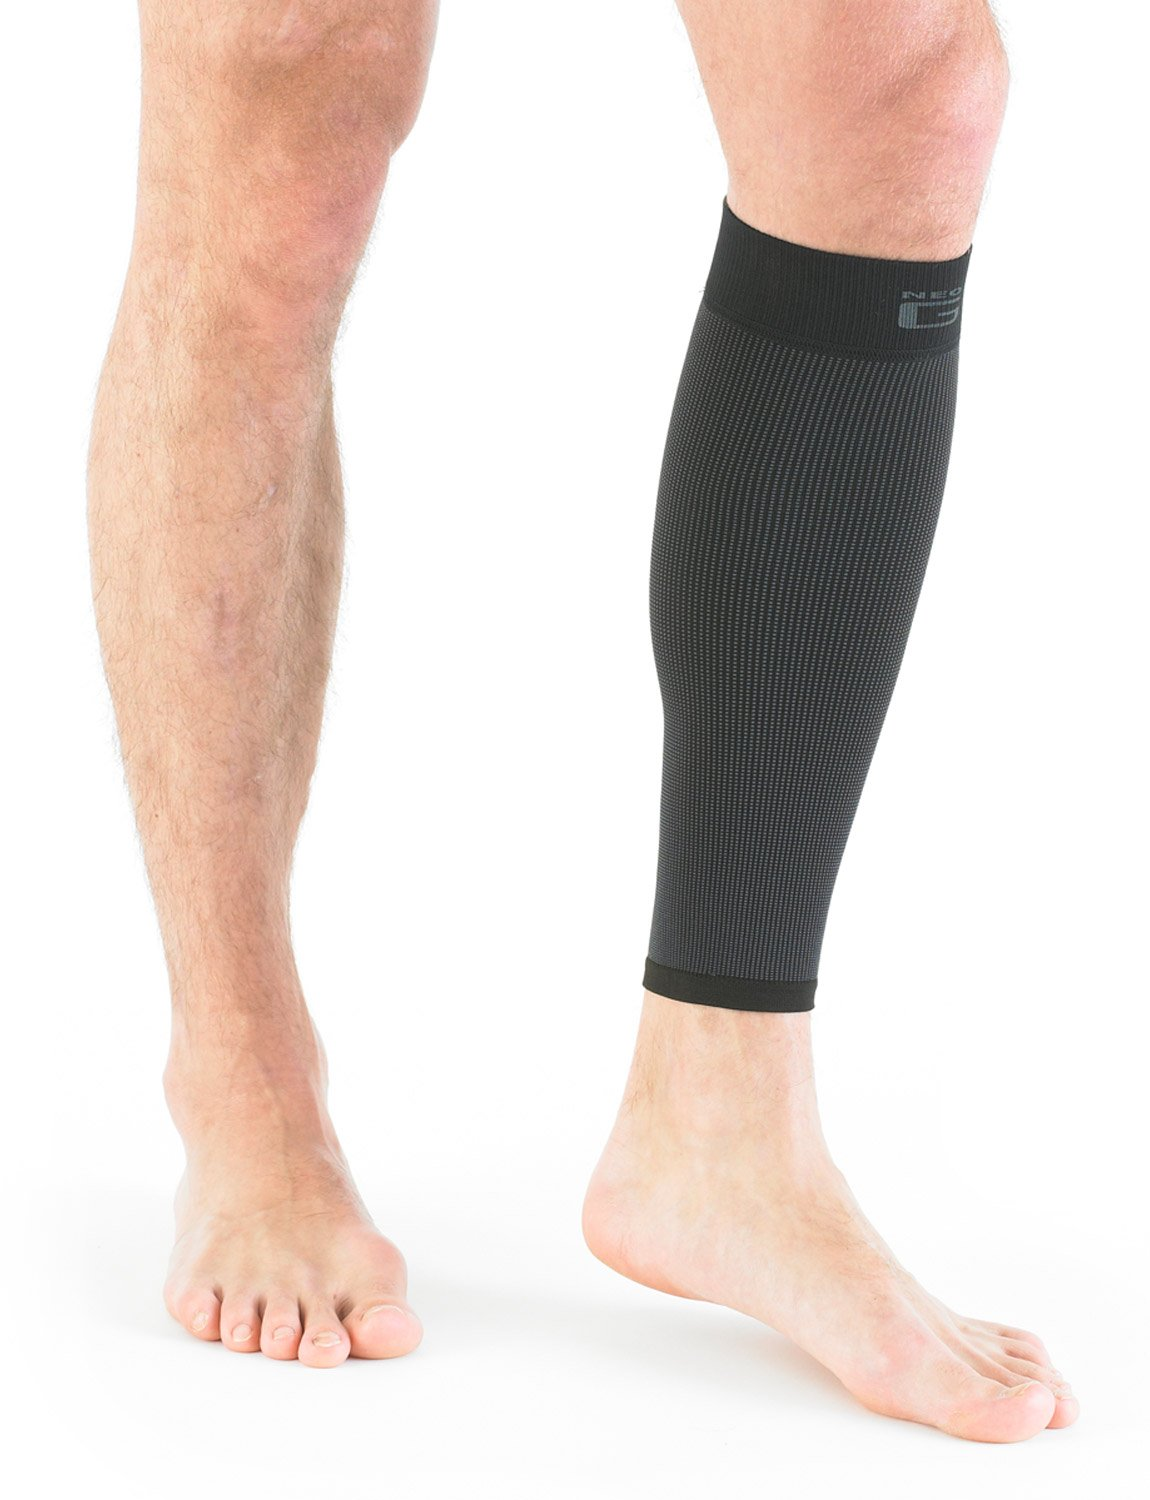 NEO G Airflow Calf/Shin Support - SMALL - Black - Medical Grade Quality sleeve, Multi Zone Compression, lightweight, breathable, HELPS strains, sprains, injured, weak calves/shins - Unisex Brace